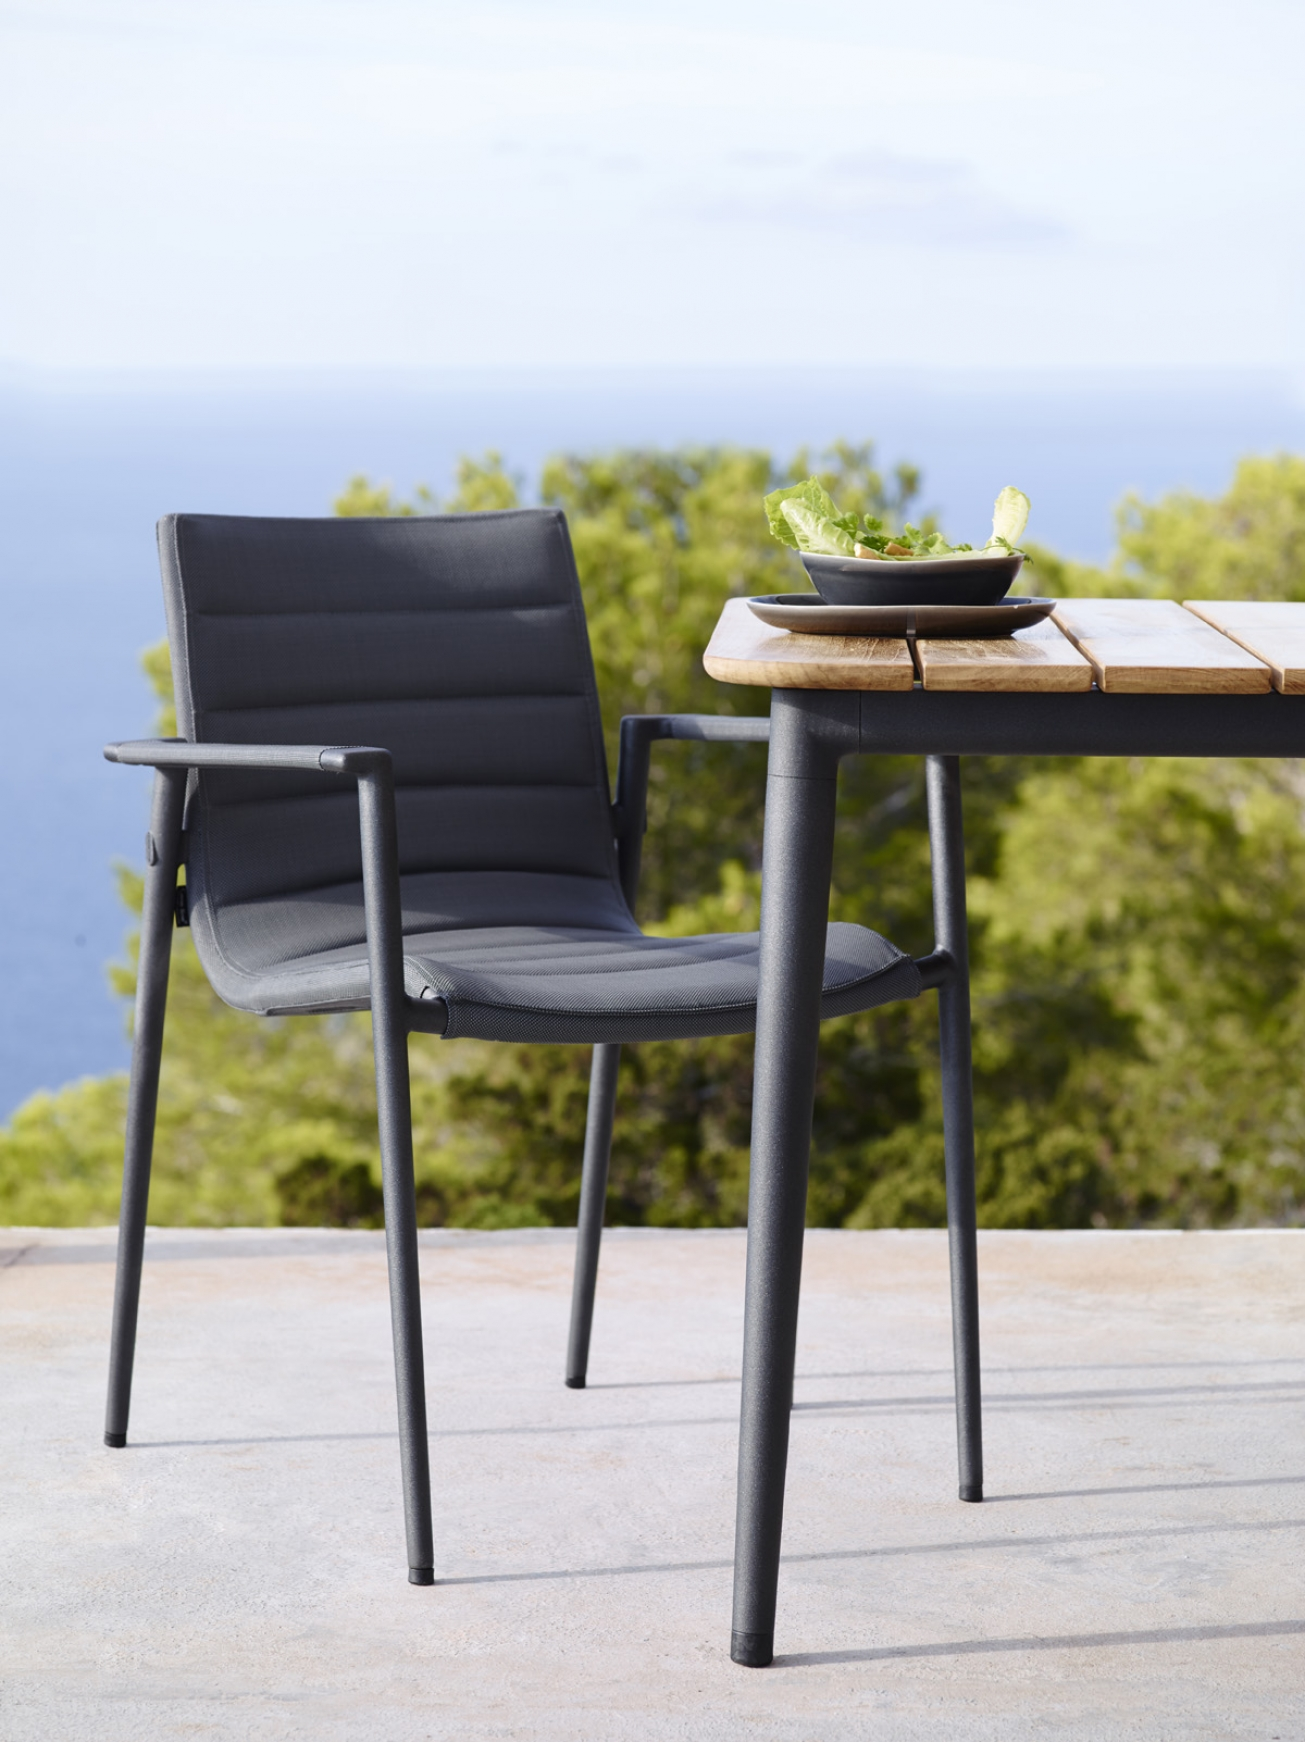 core outdoor dining chair  outdoor furniture  iq furniture -  core outdoor dining chairs